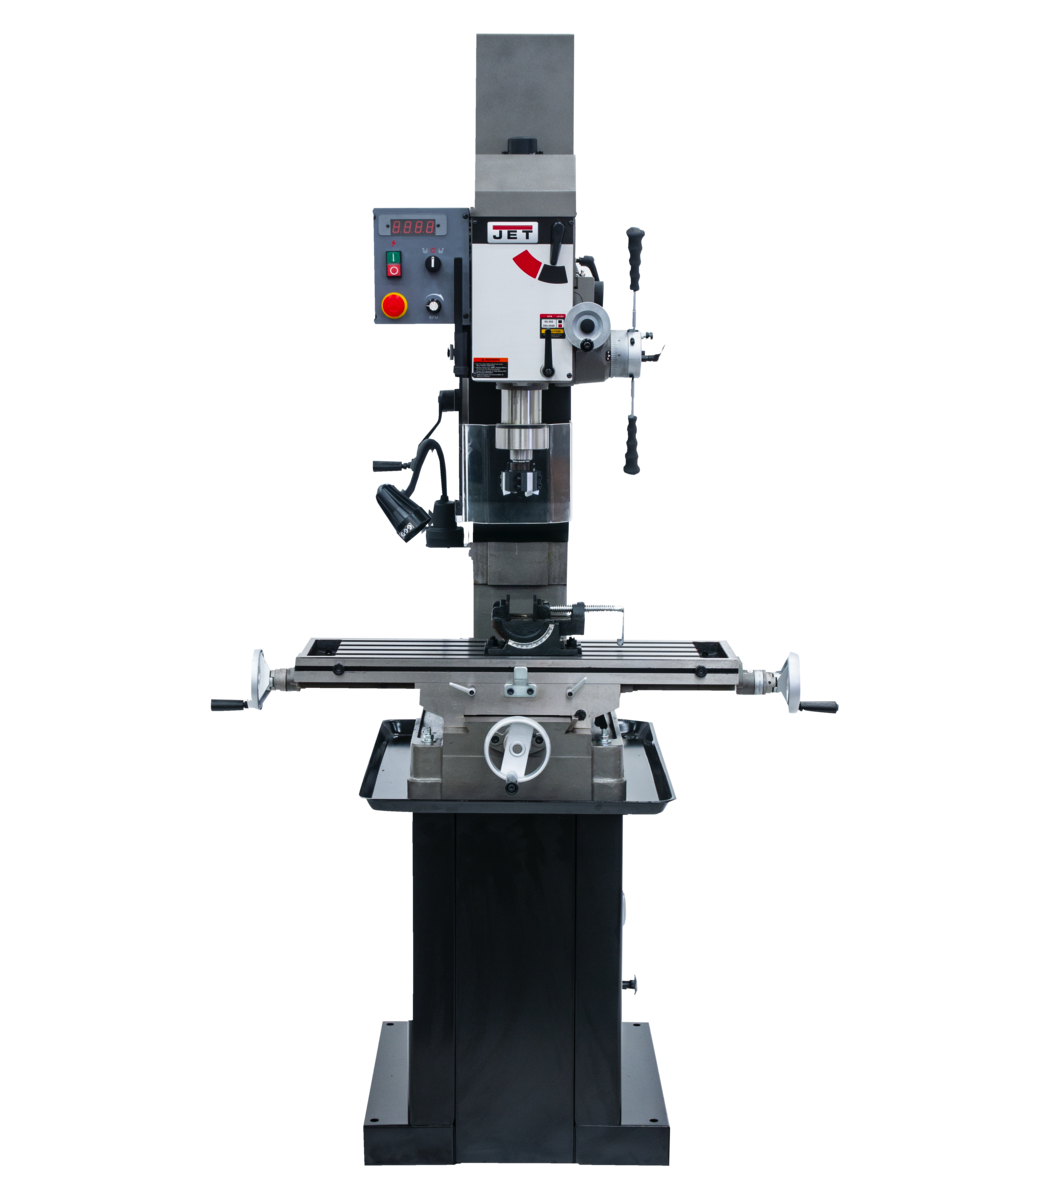 JMD-45VSPF Variable Speed Square Column Geared Head Mill/Drill with Newall DP700 2-Axis DRO & X-Axis